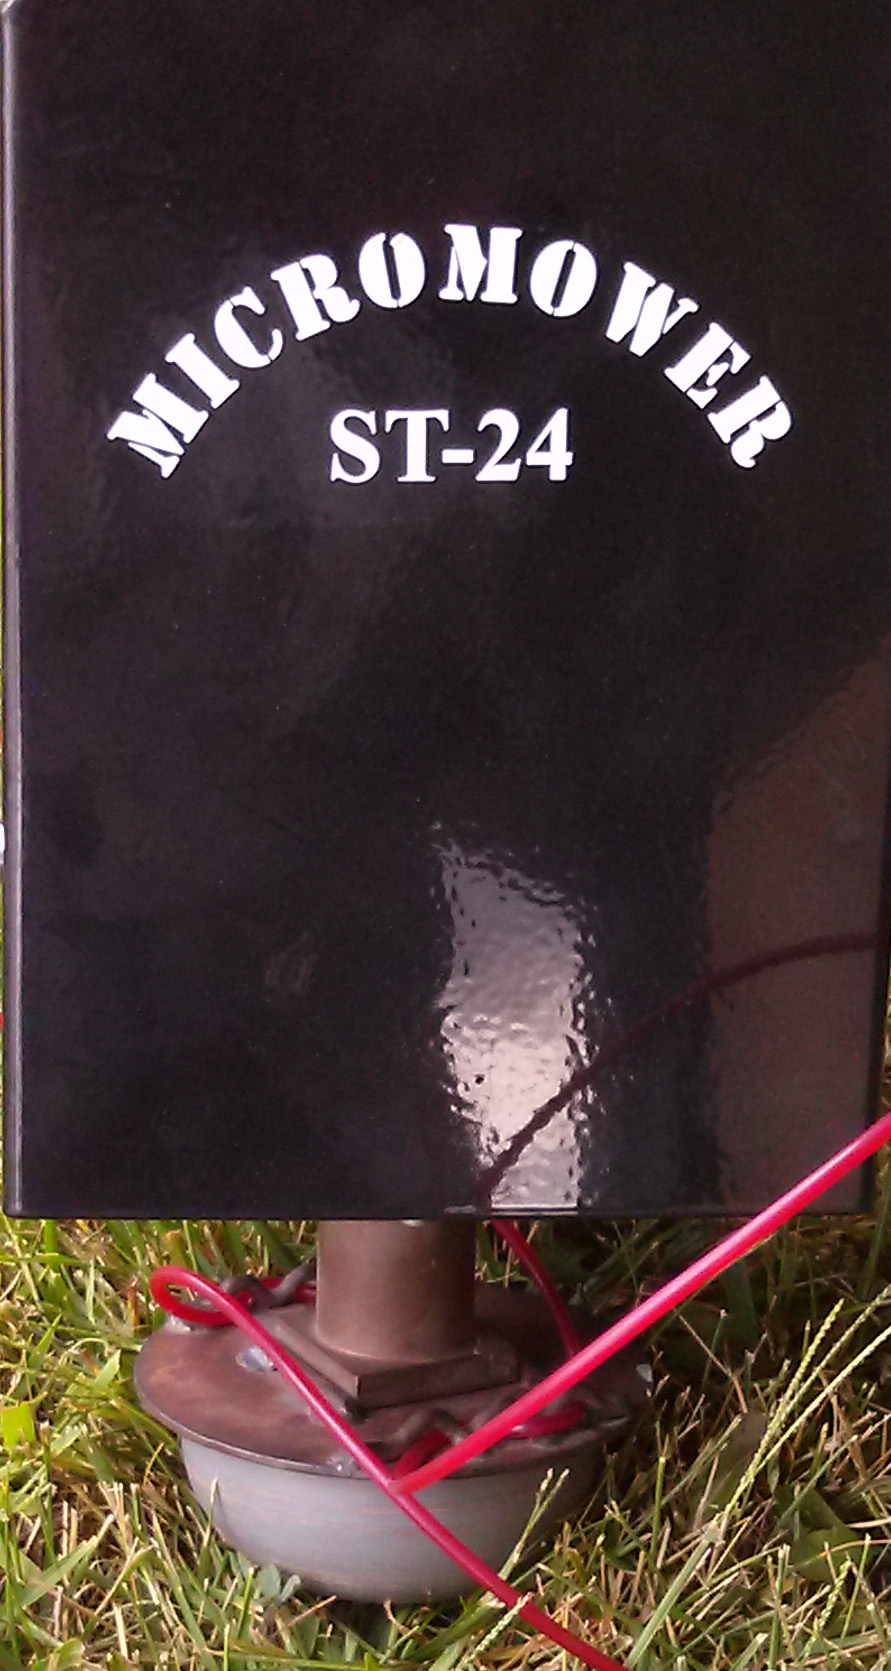 String Trimmer ST24